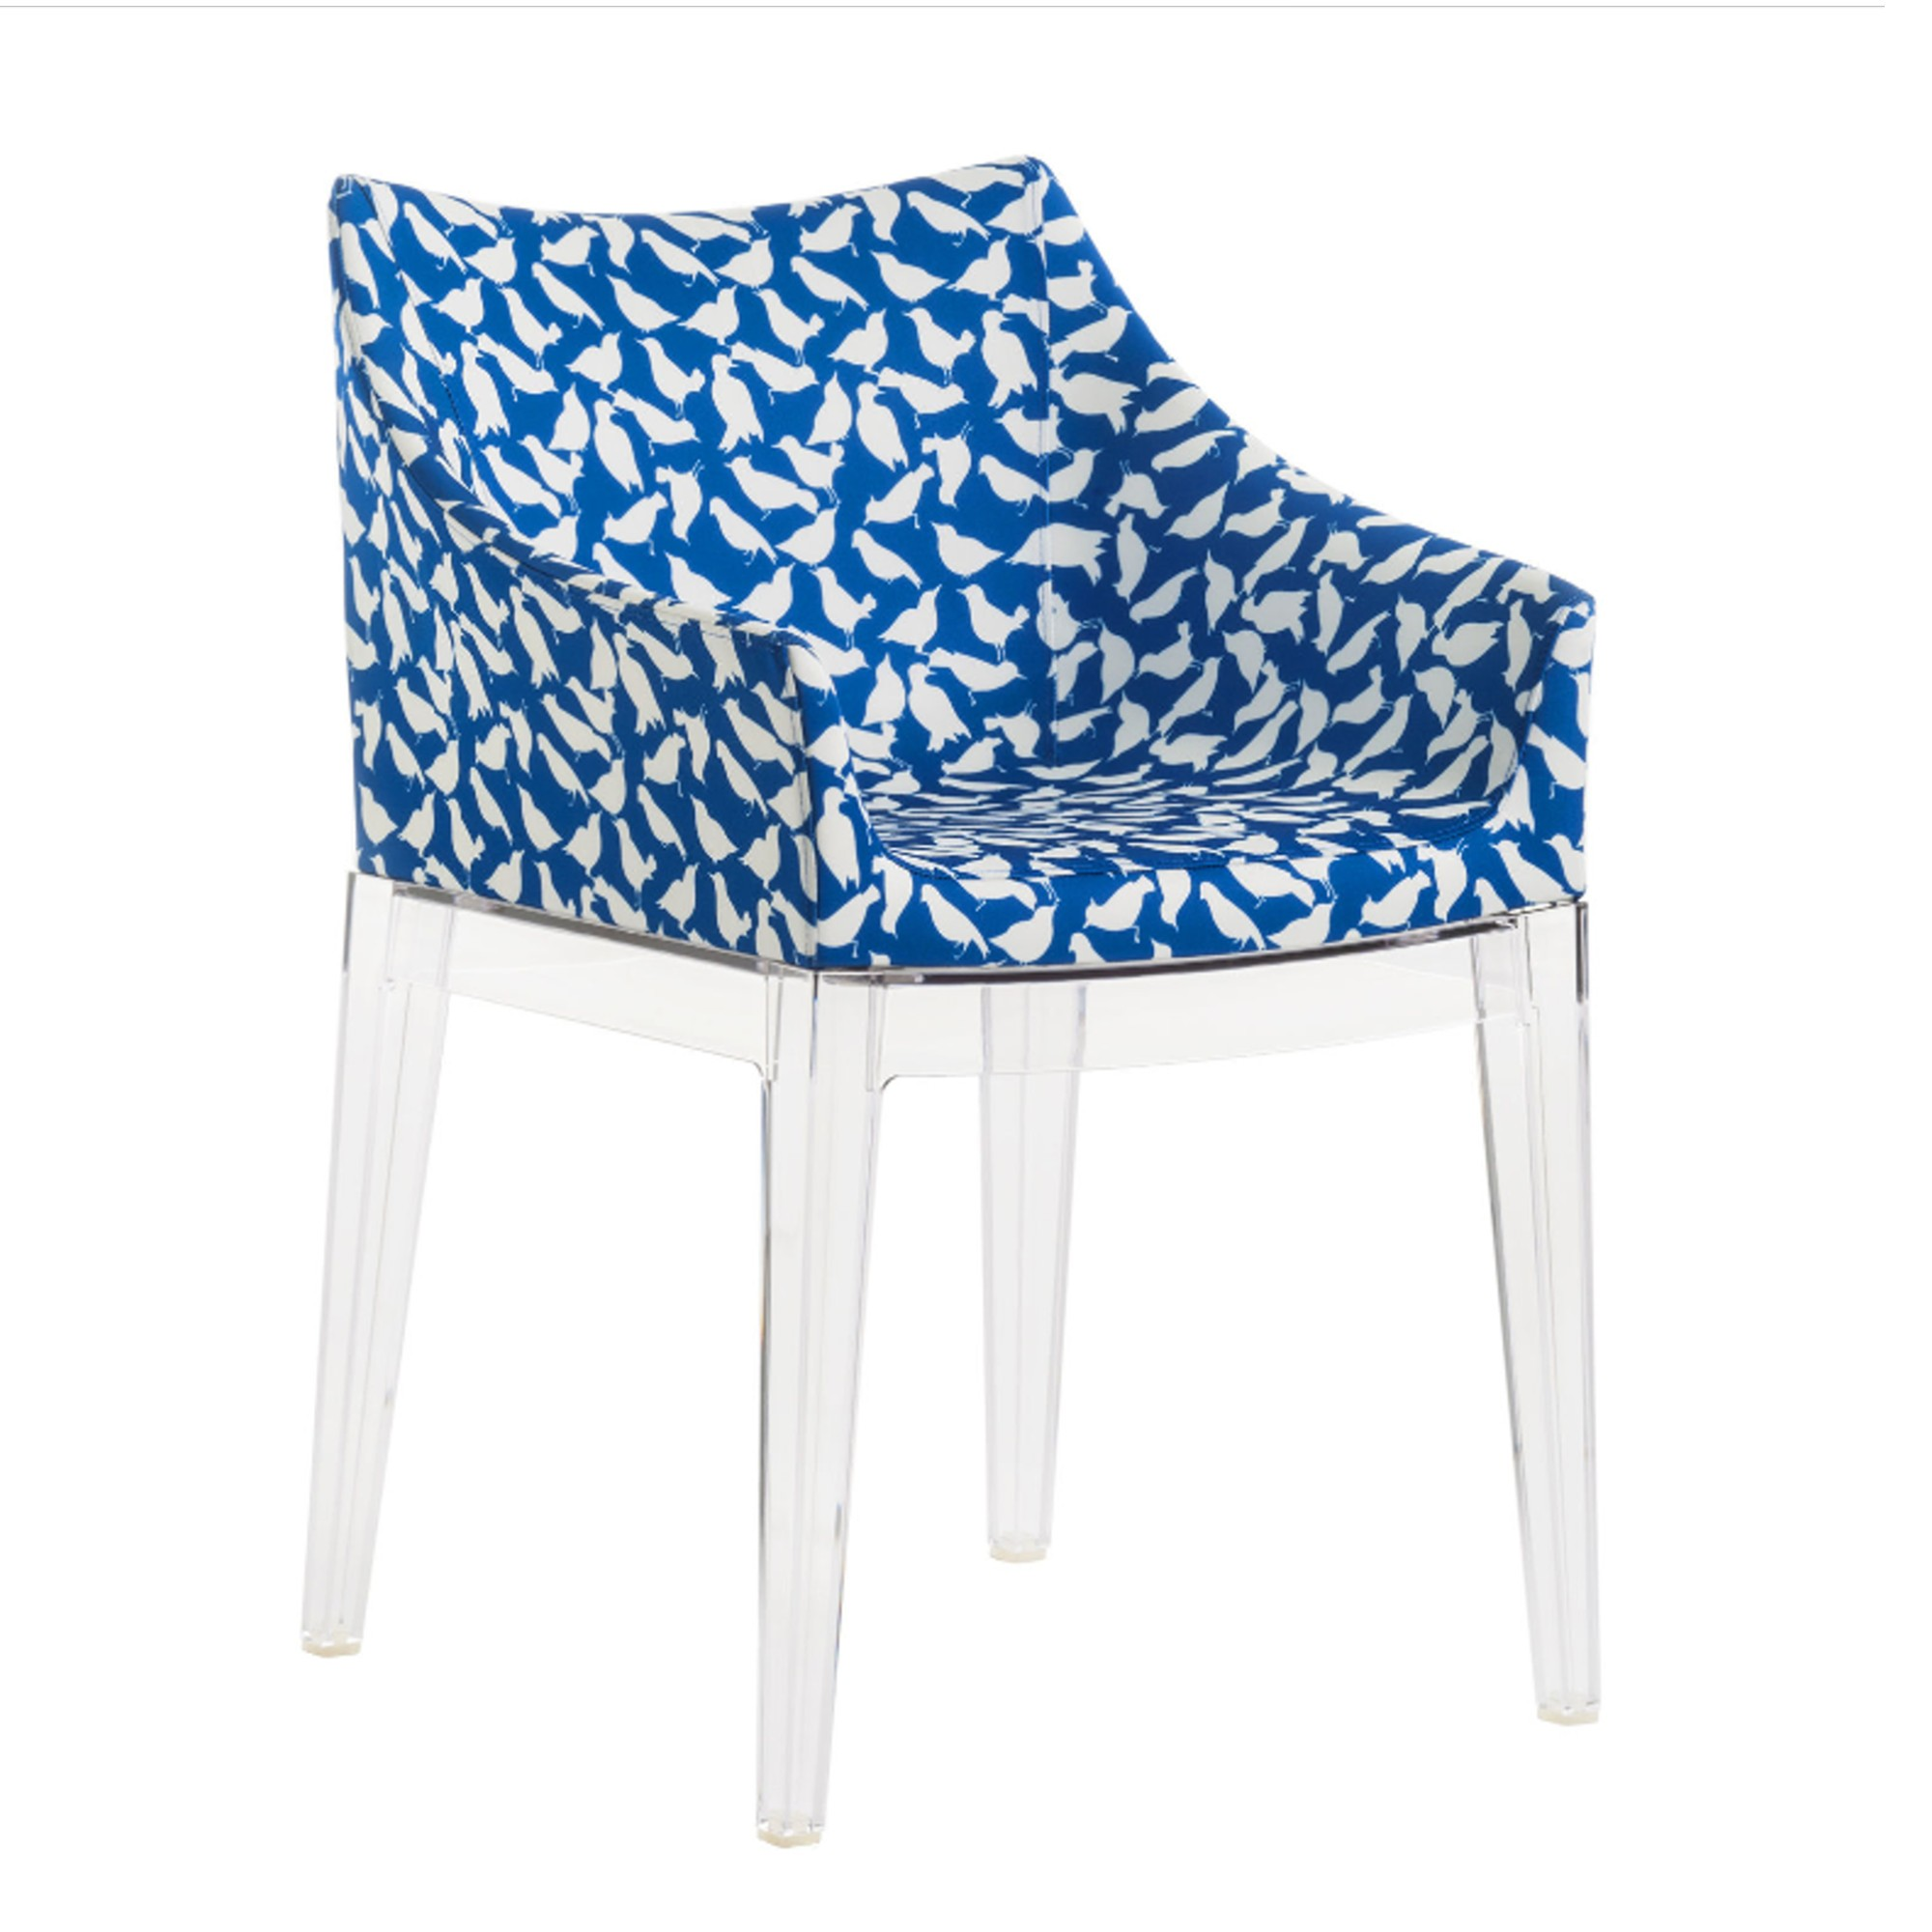 MADAME LA DOUBLE J, by KARTELL